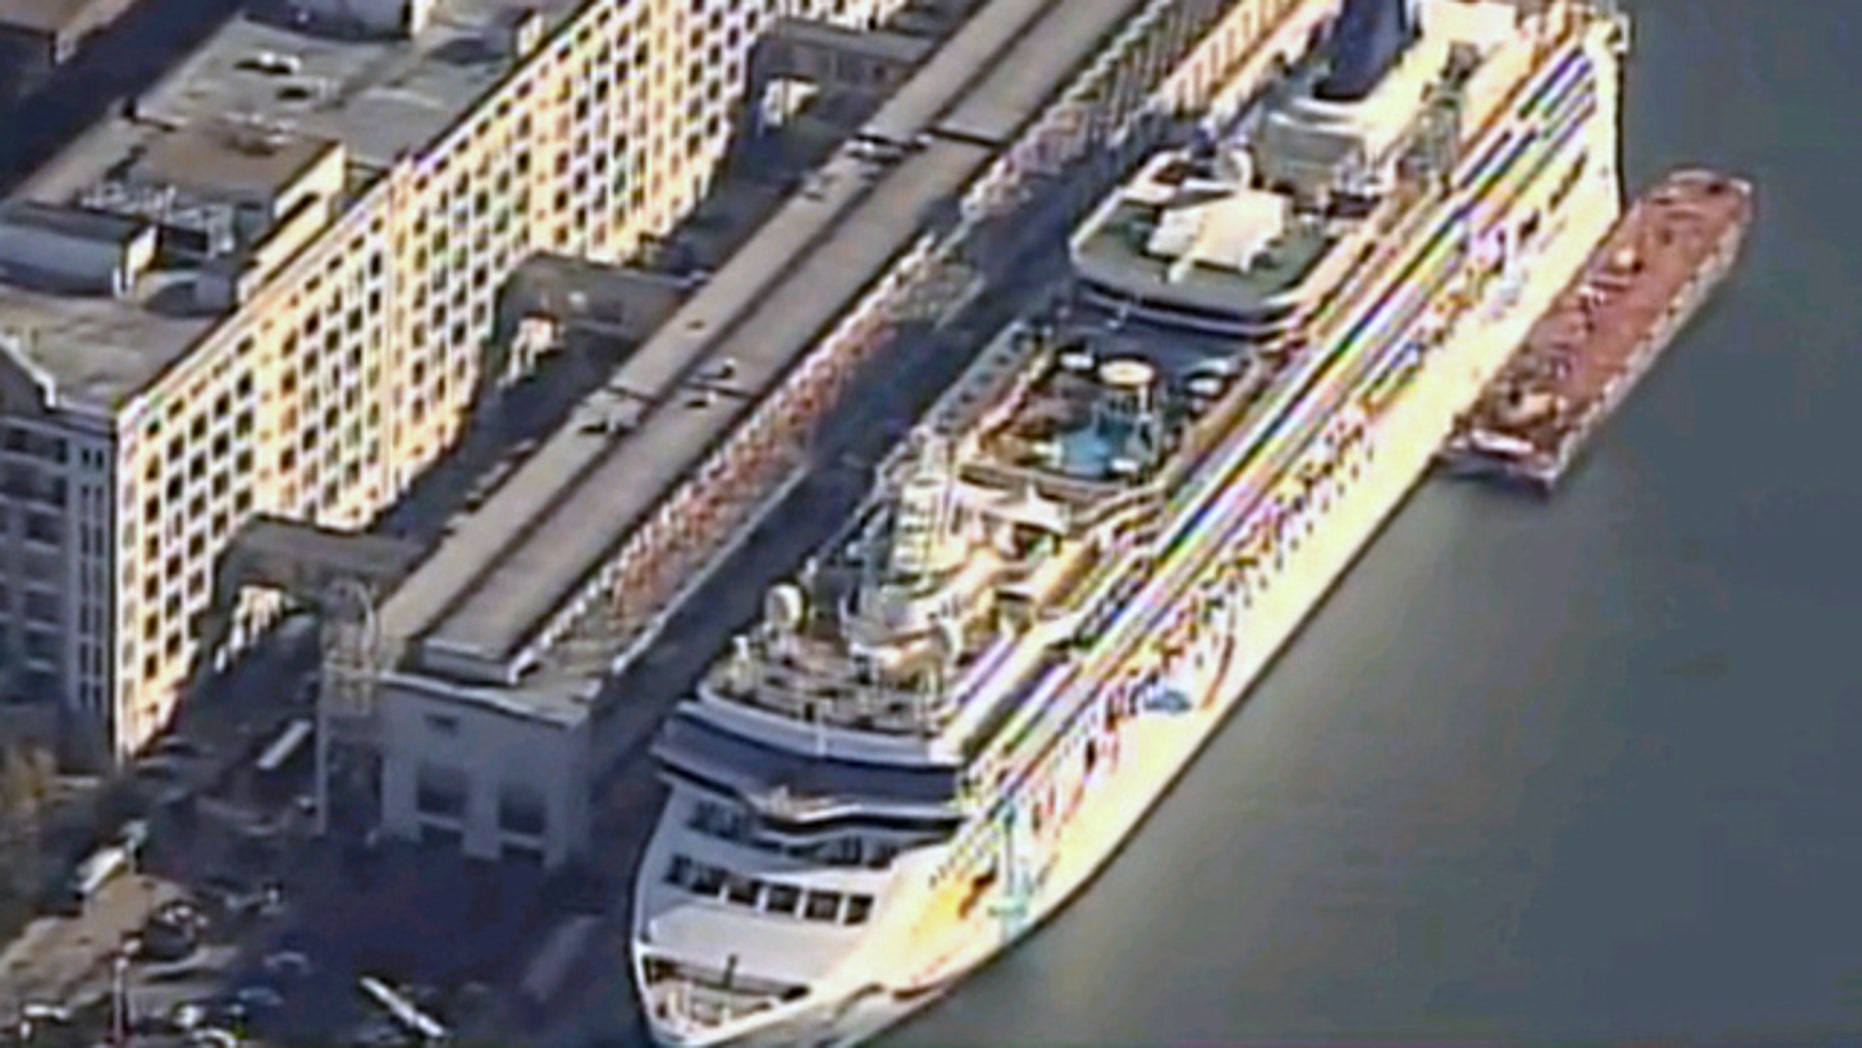 Oct. 28, 2011: Norwegian Cruise Line ship docks in Boston after two people are found dead on board.